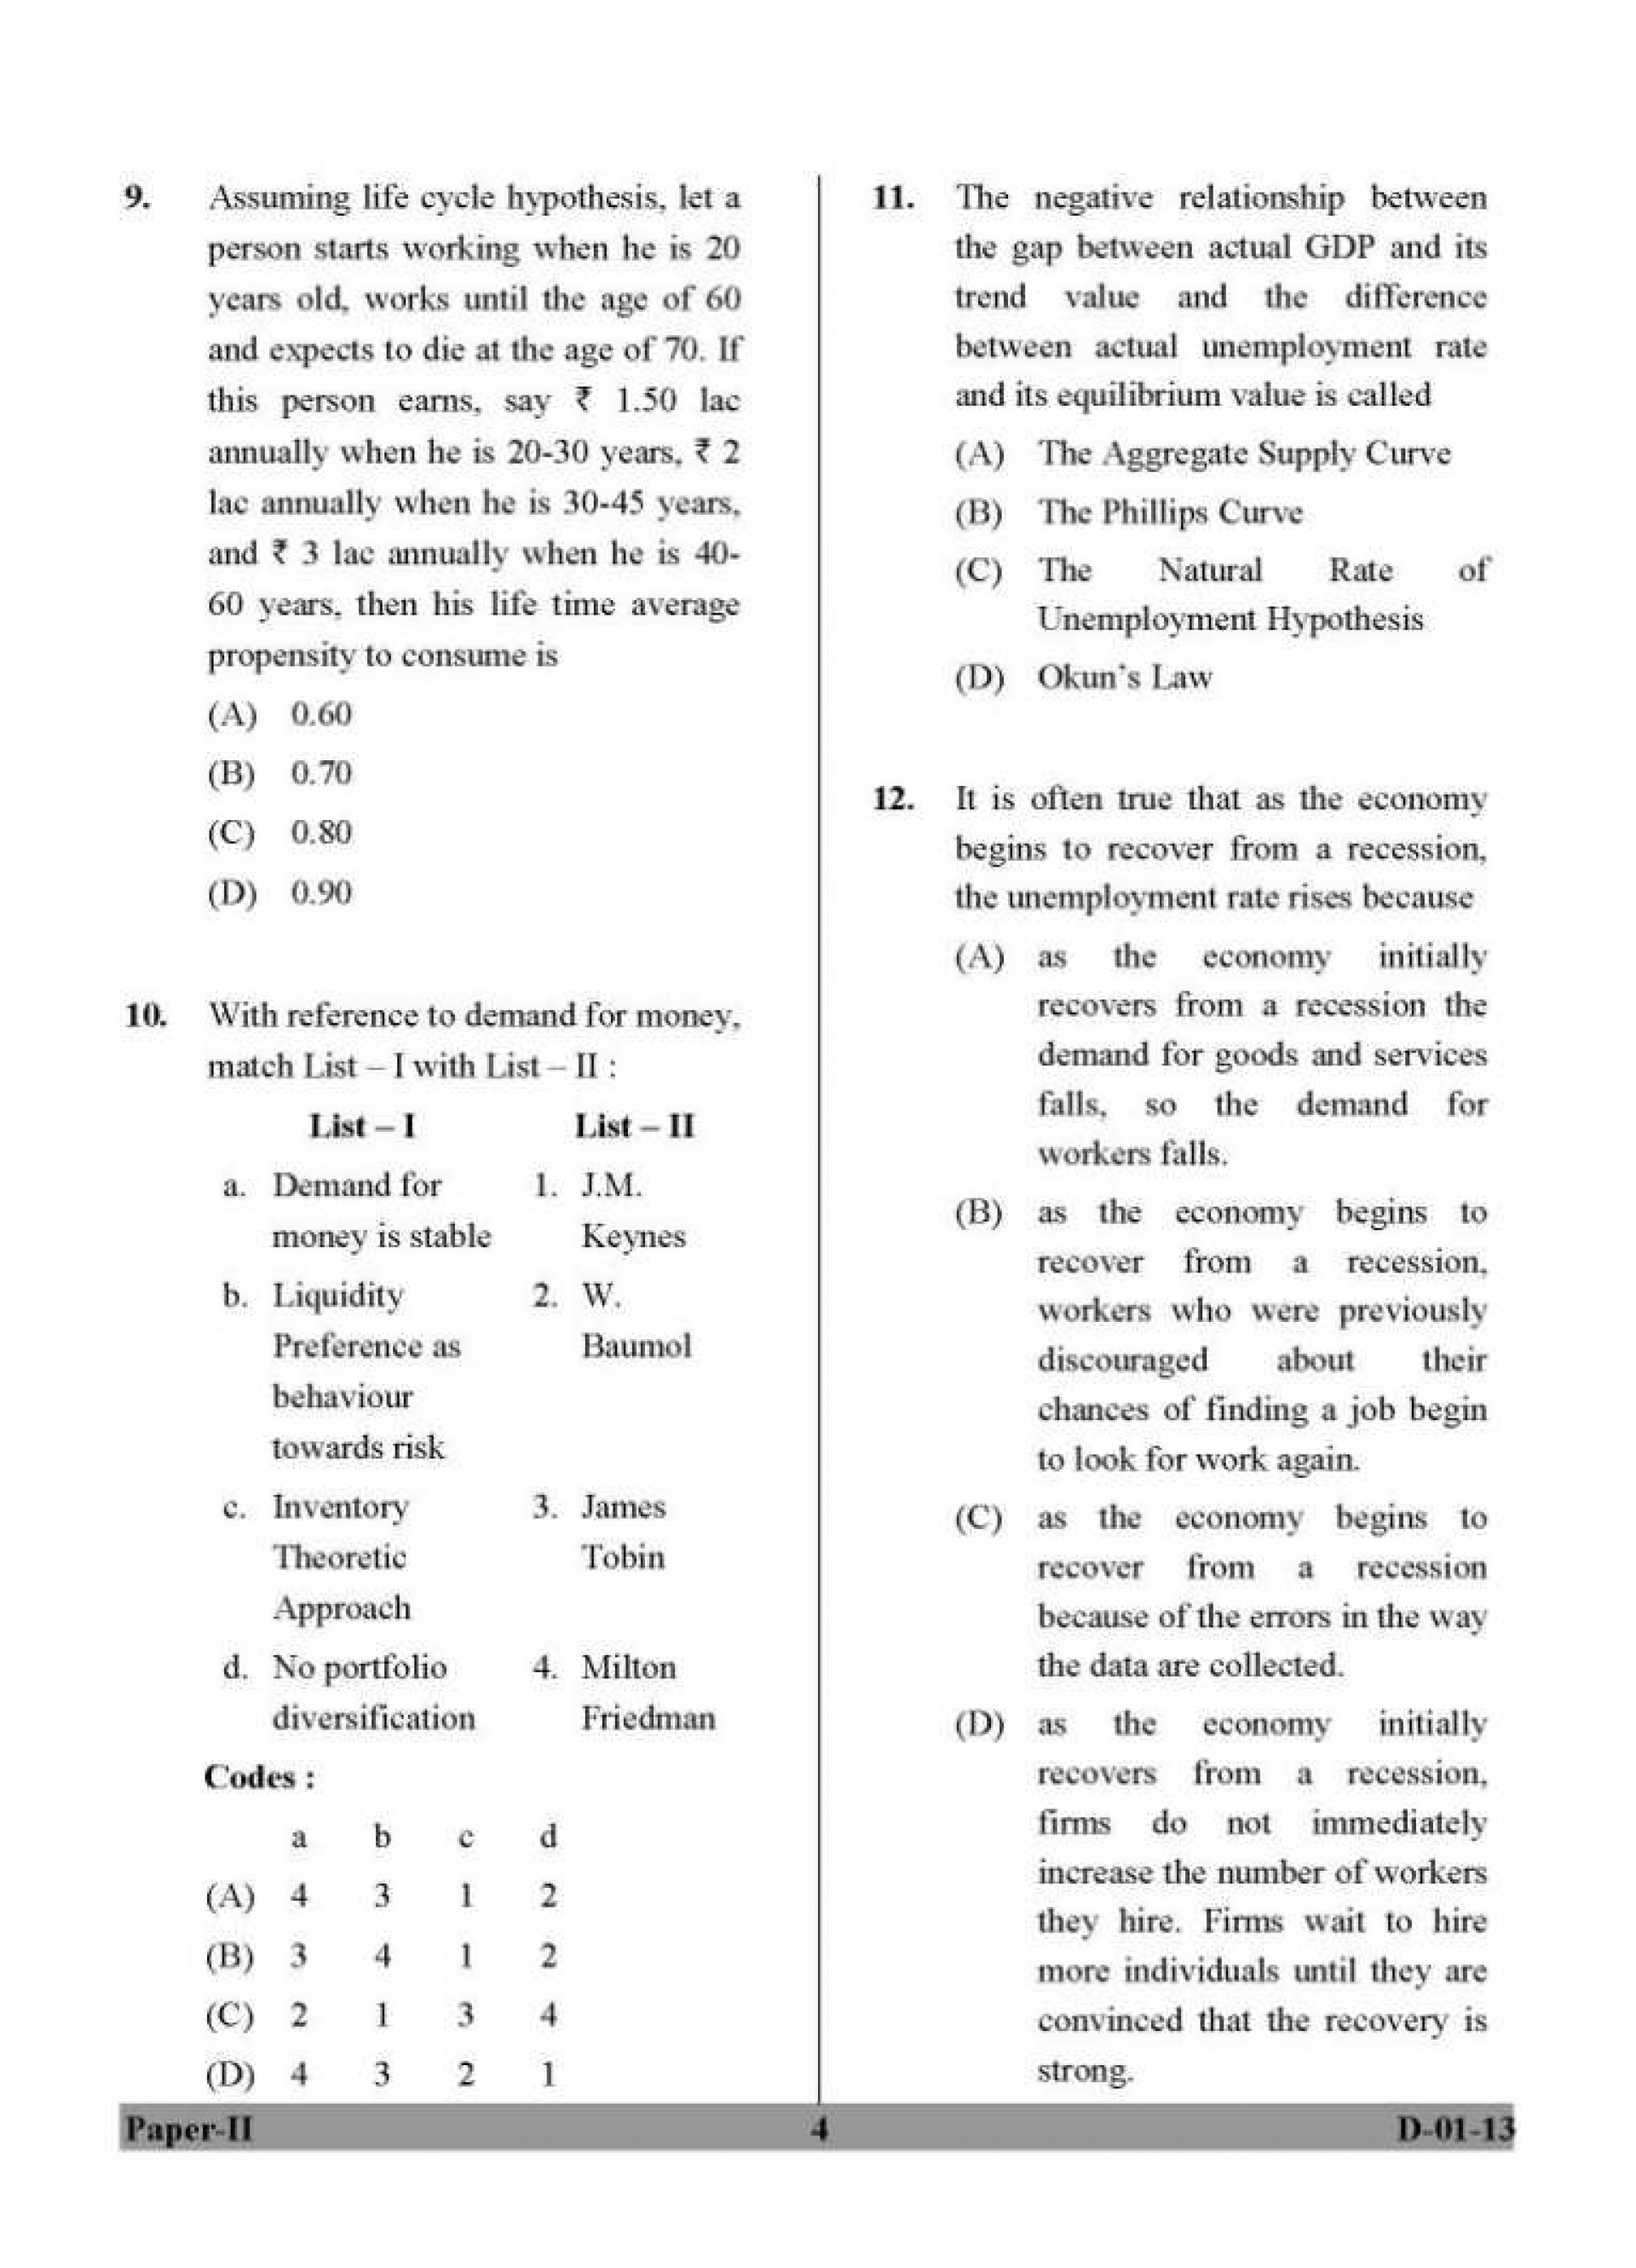 008 Research Paper Model Question Papers Economics In Stupendous Topics Finance Business International 1920